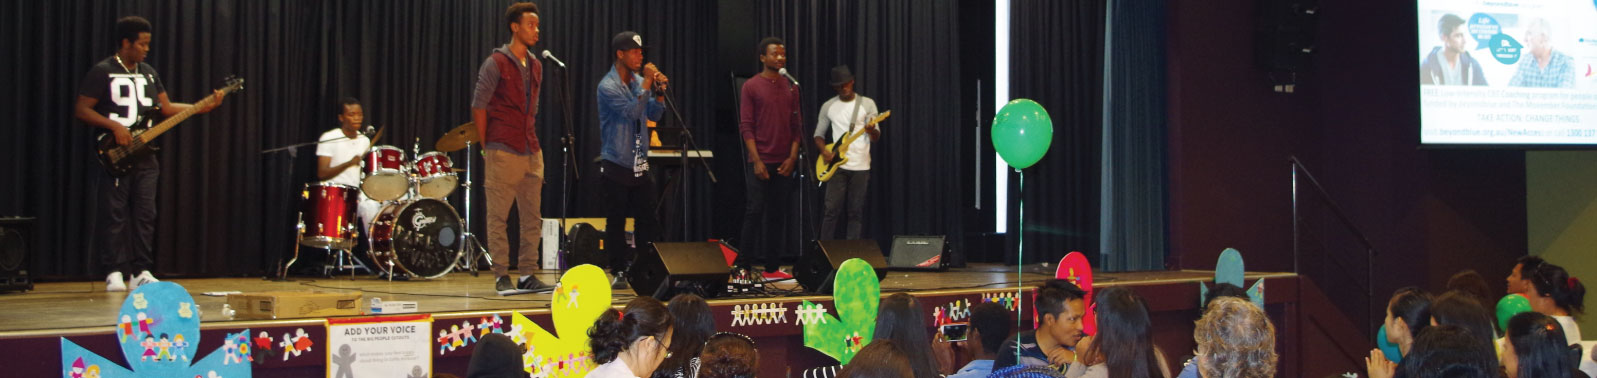 band playing at multicultural expo 2016